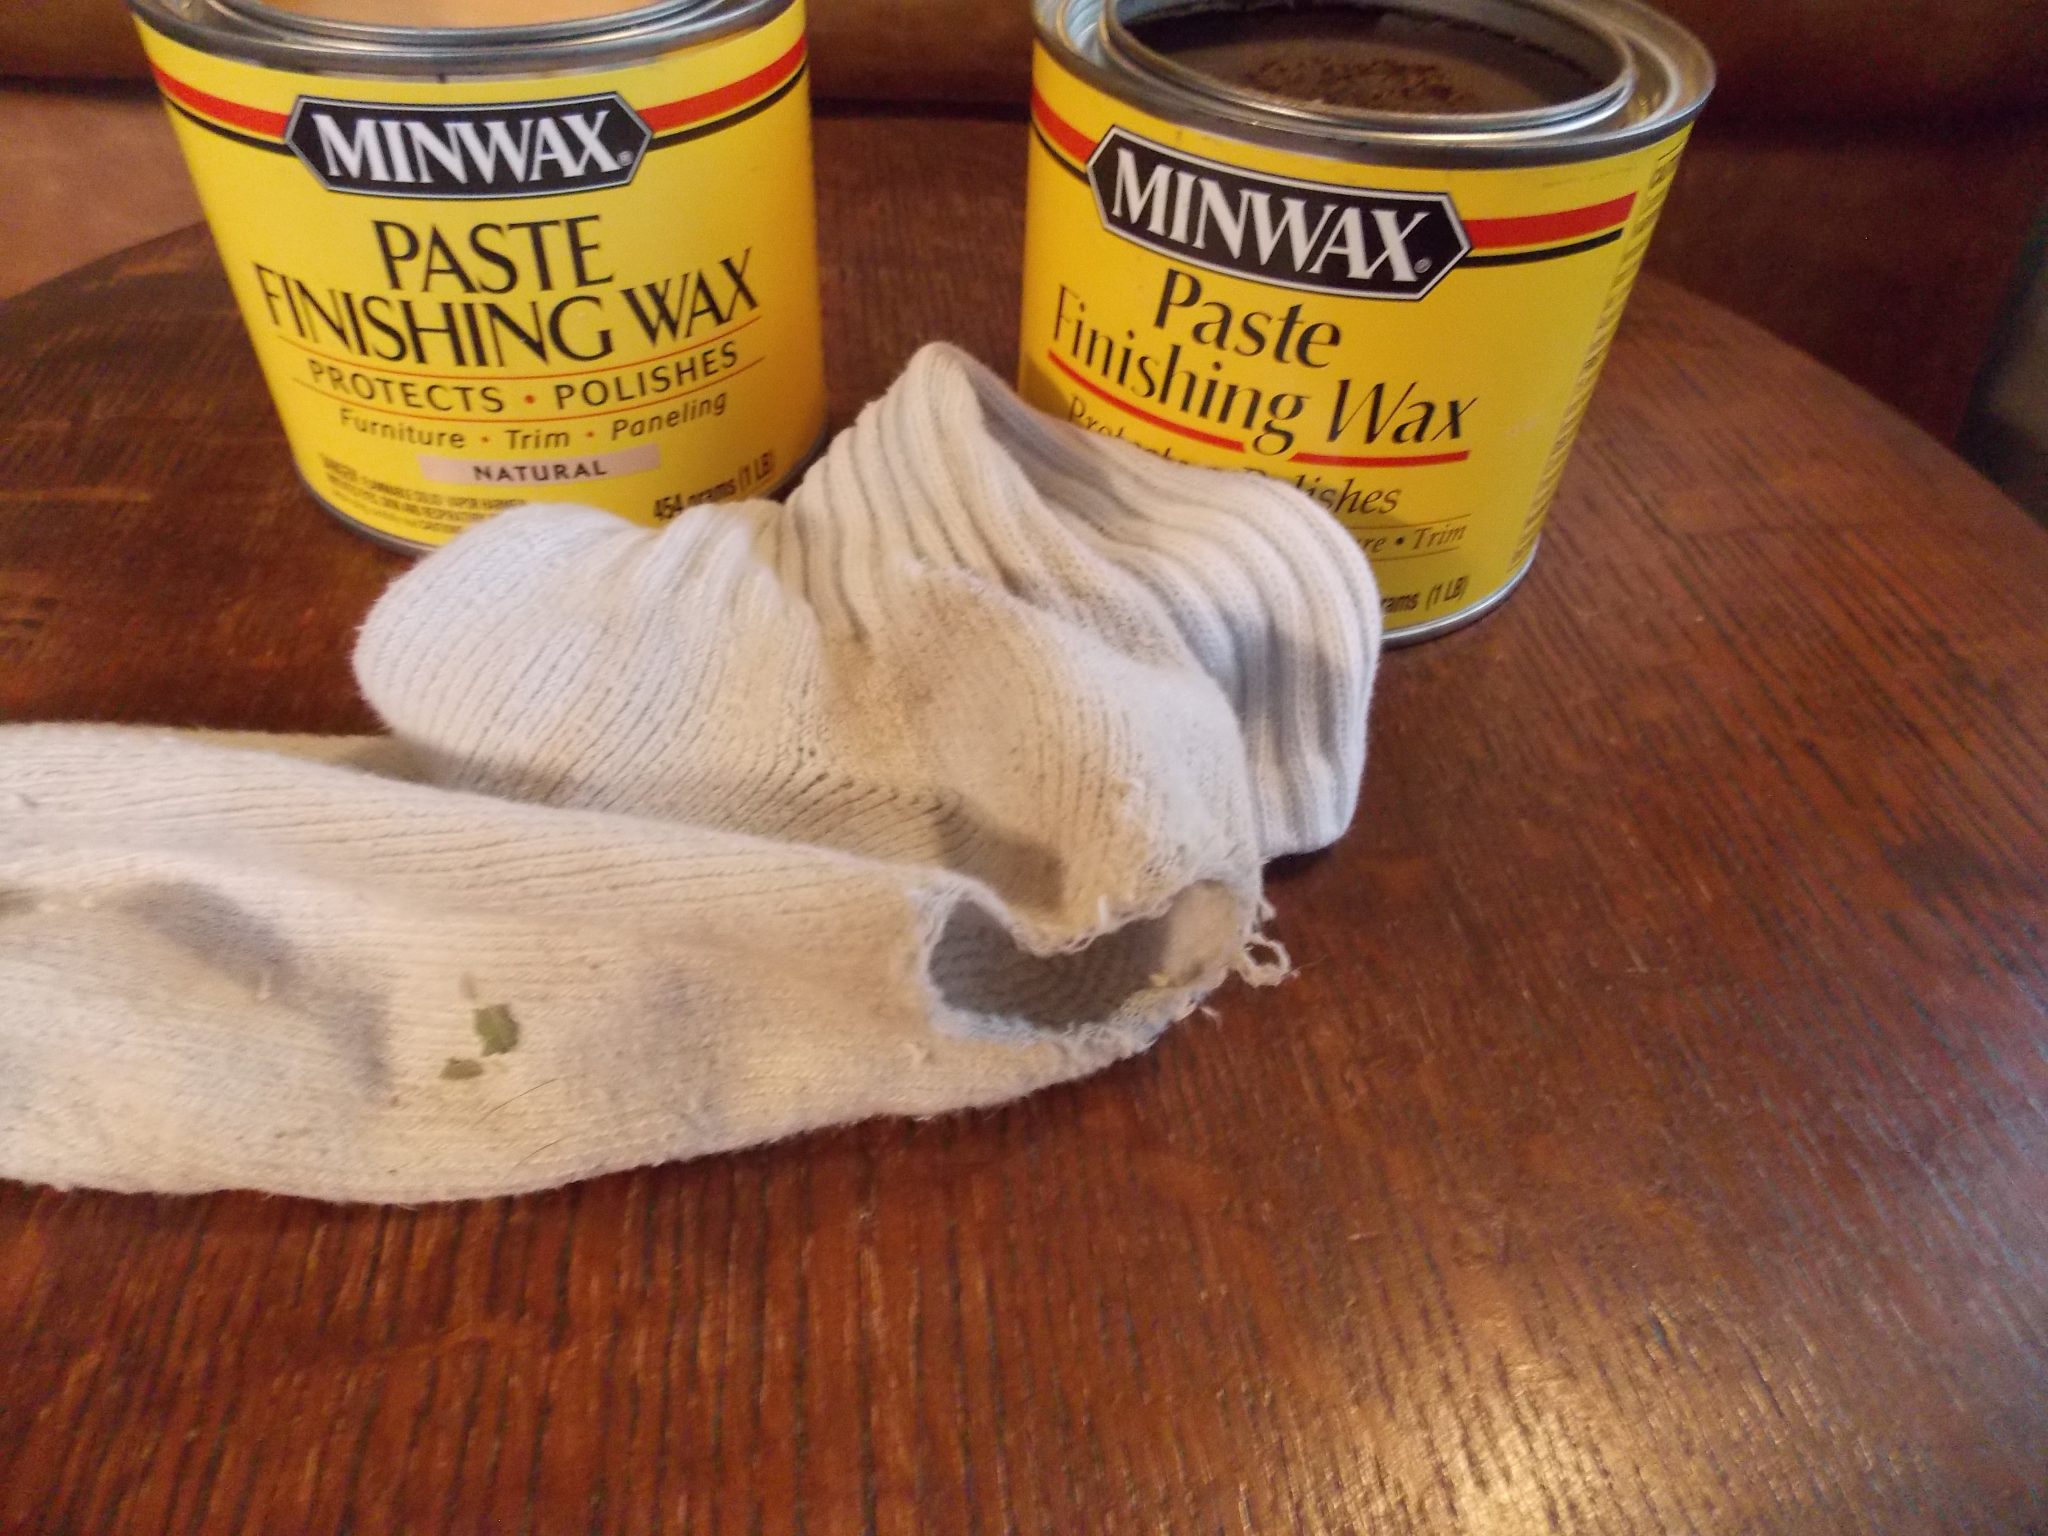 Speaking Of Application, I Save All My Worn Athletic Socks, As They Make  Great Applicators For Paste Wax. I Work The Paste Wax Into The Wood With  Small, ...